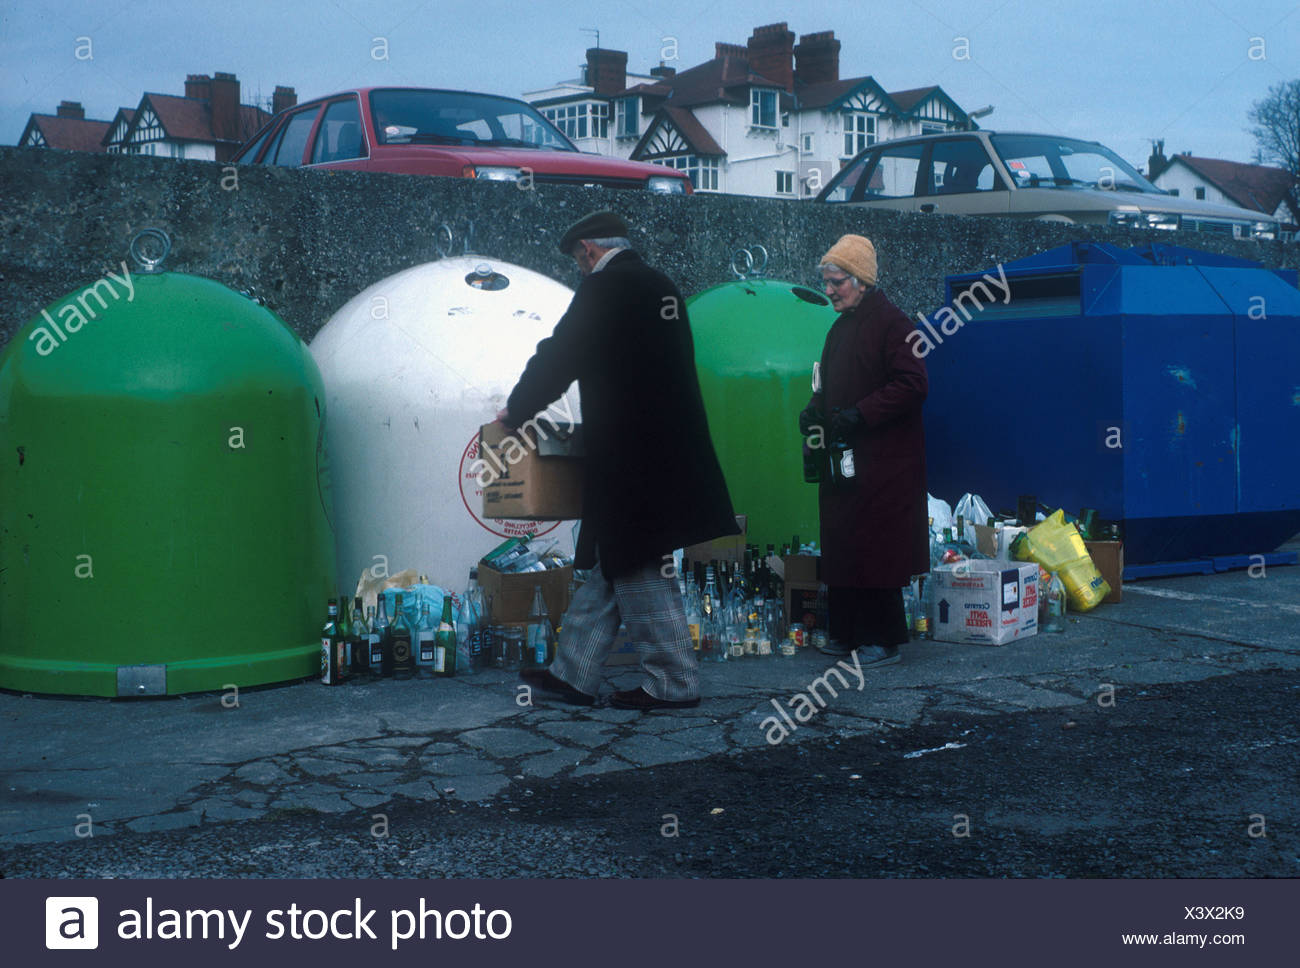 Conservation Recycling Bottle banks at Colwyn Bay overflowing people with more bottles - Stock Image